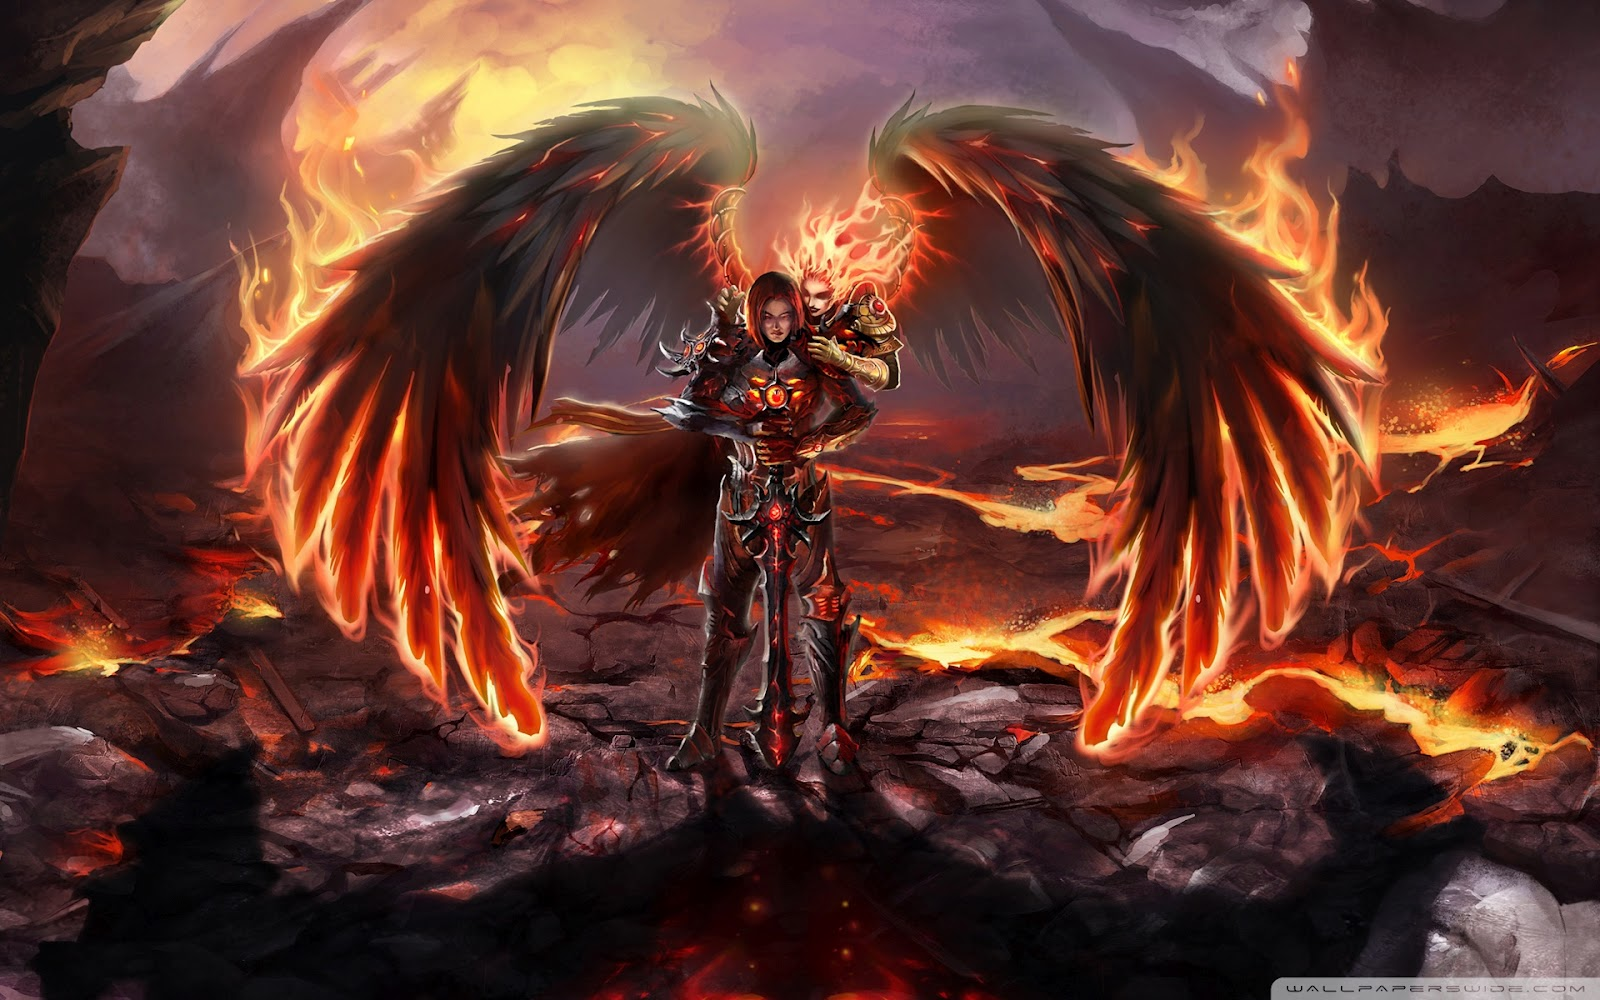 http://3.bp.blogspot.com/-qxVLPI6e5MA/T2bolAVdIVI/AAAAAAAAAmc/C3NrmmArLYg/s1600/Inferno-magic-animated-background-angel-fire.jpg